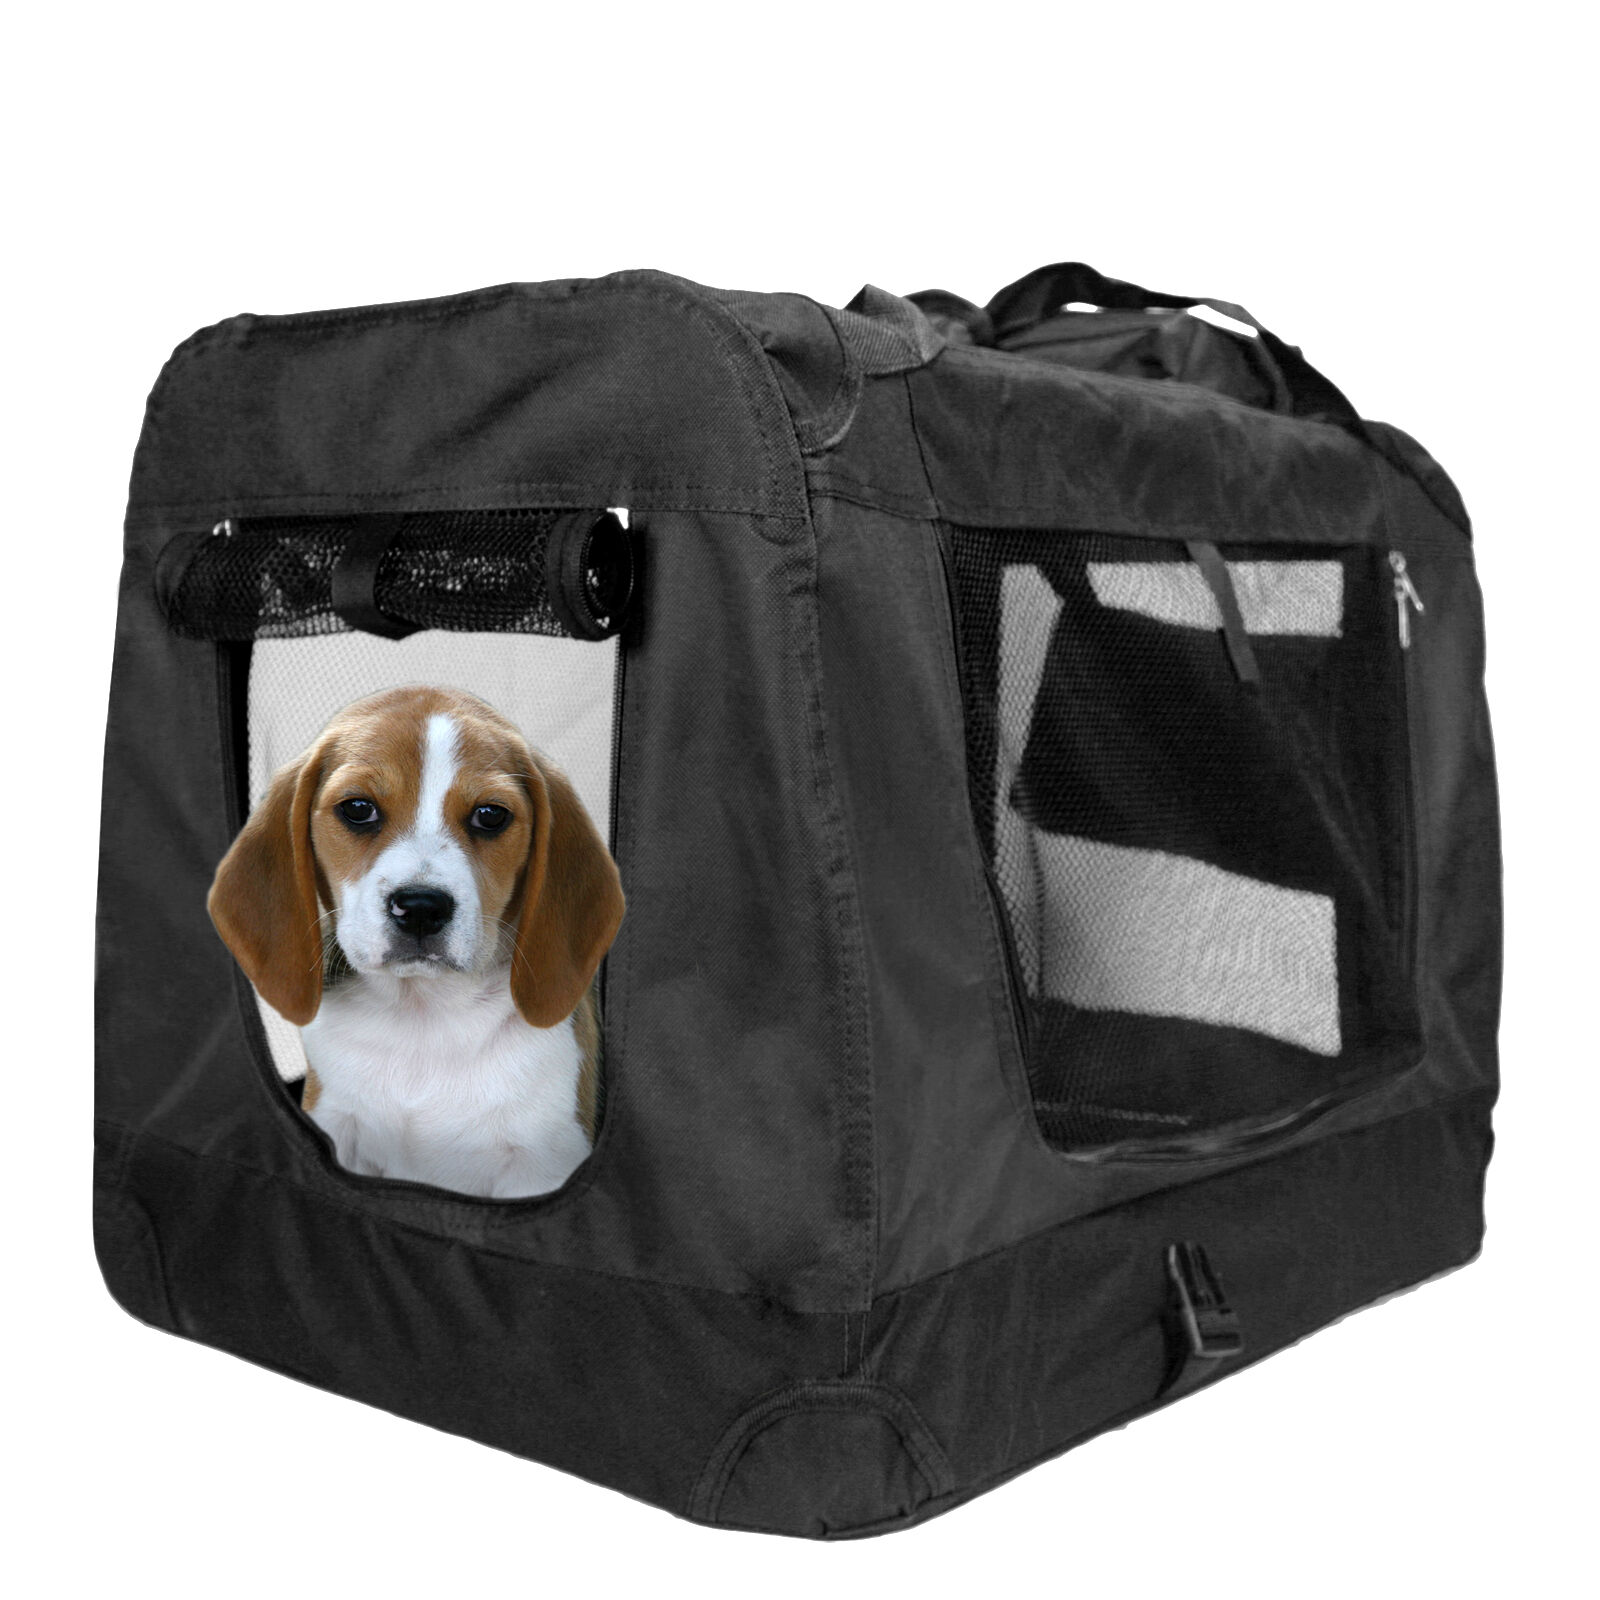 Dog Carrier Portable Pet Crate Soft Sided Comfort Travel Crate